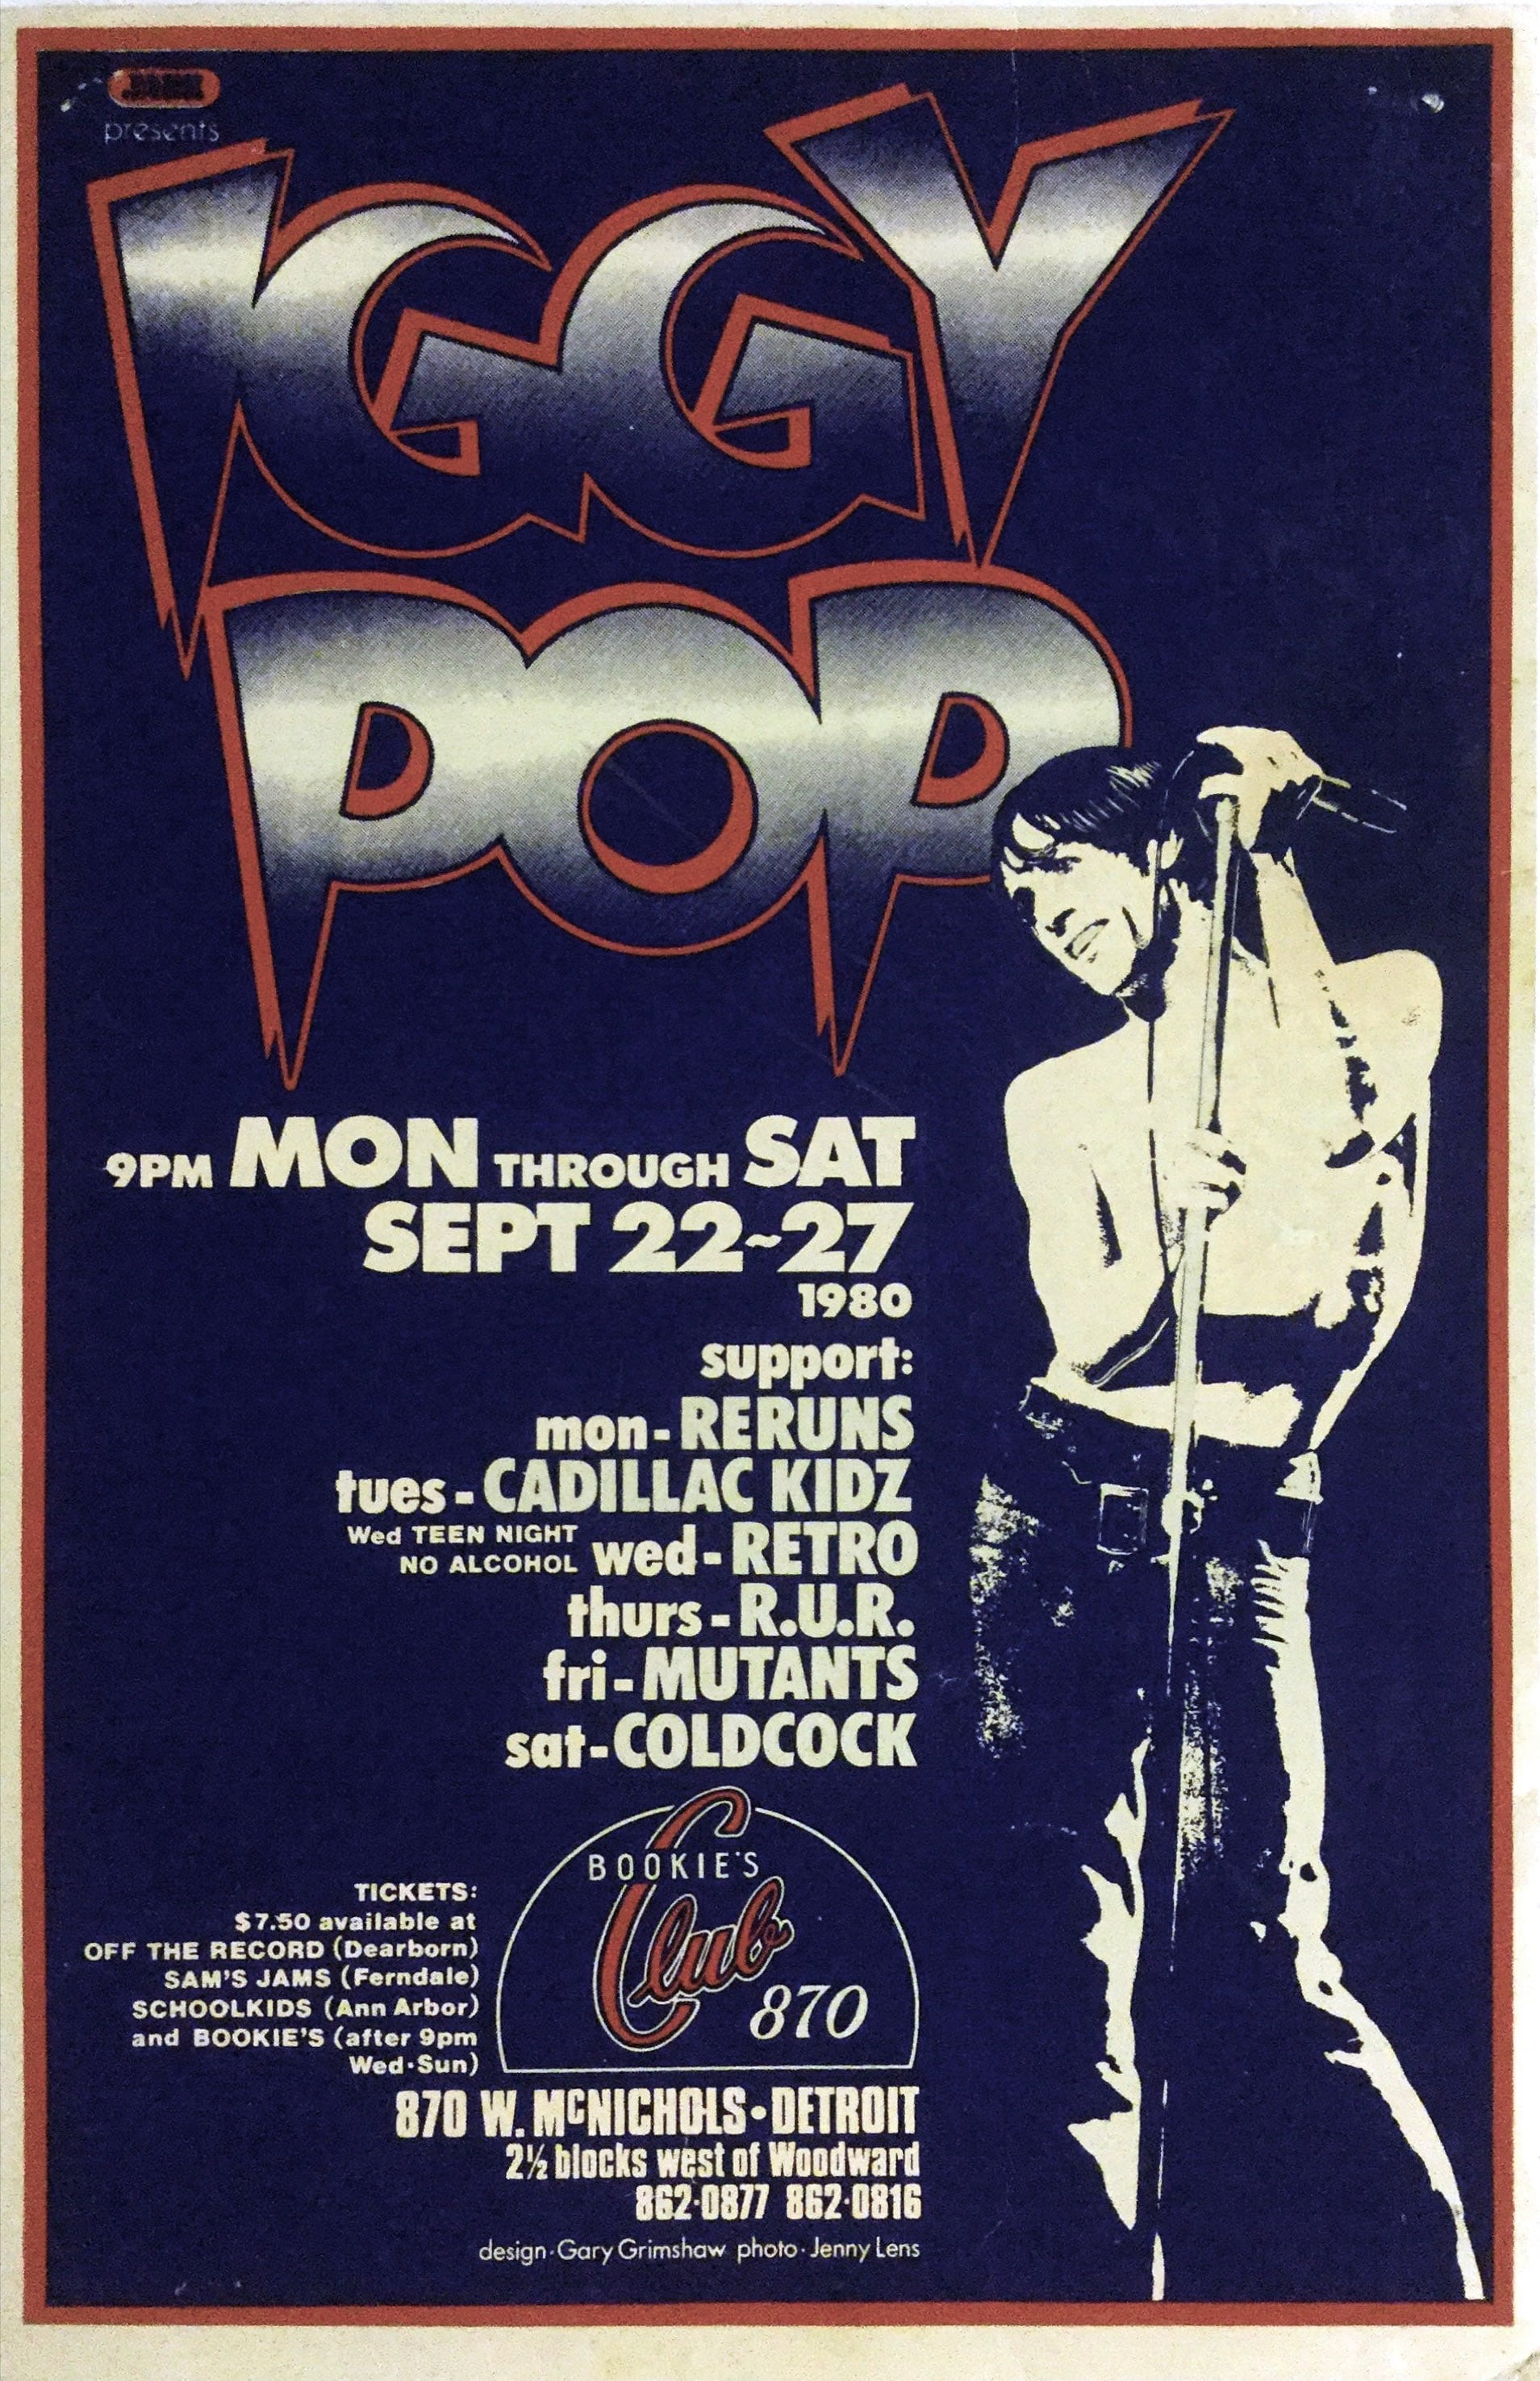 Poster design and printing - Iggy Pop 1980 First Printing Bookie S Detroit Gary Grimshaw Concert Poster